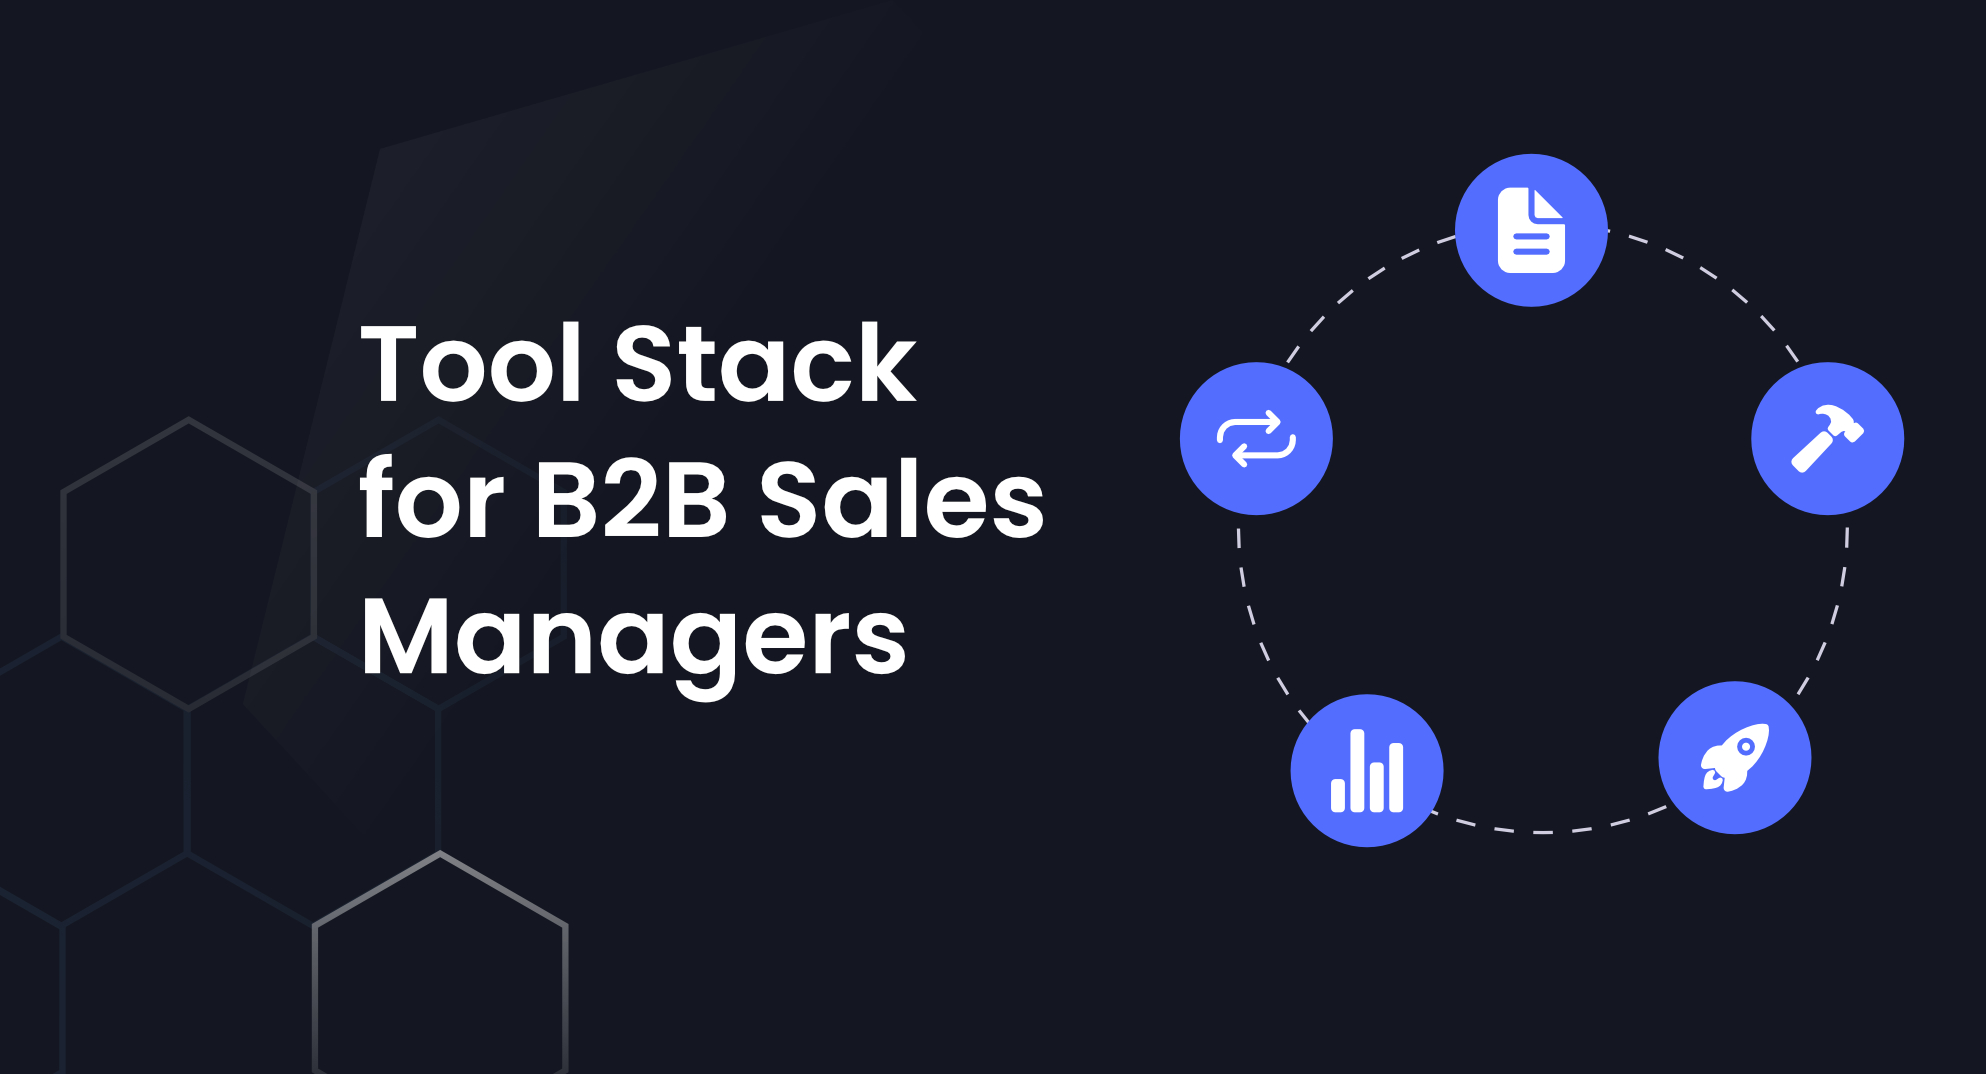 Tips for creating the ultimate tool stack for sales directors